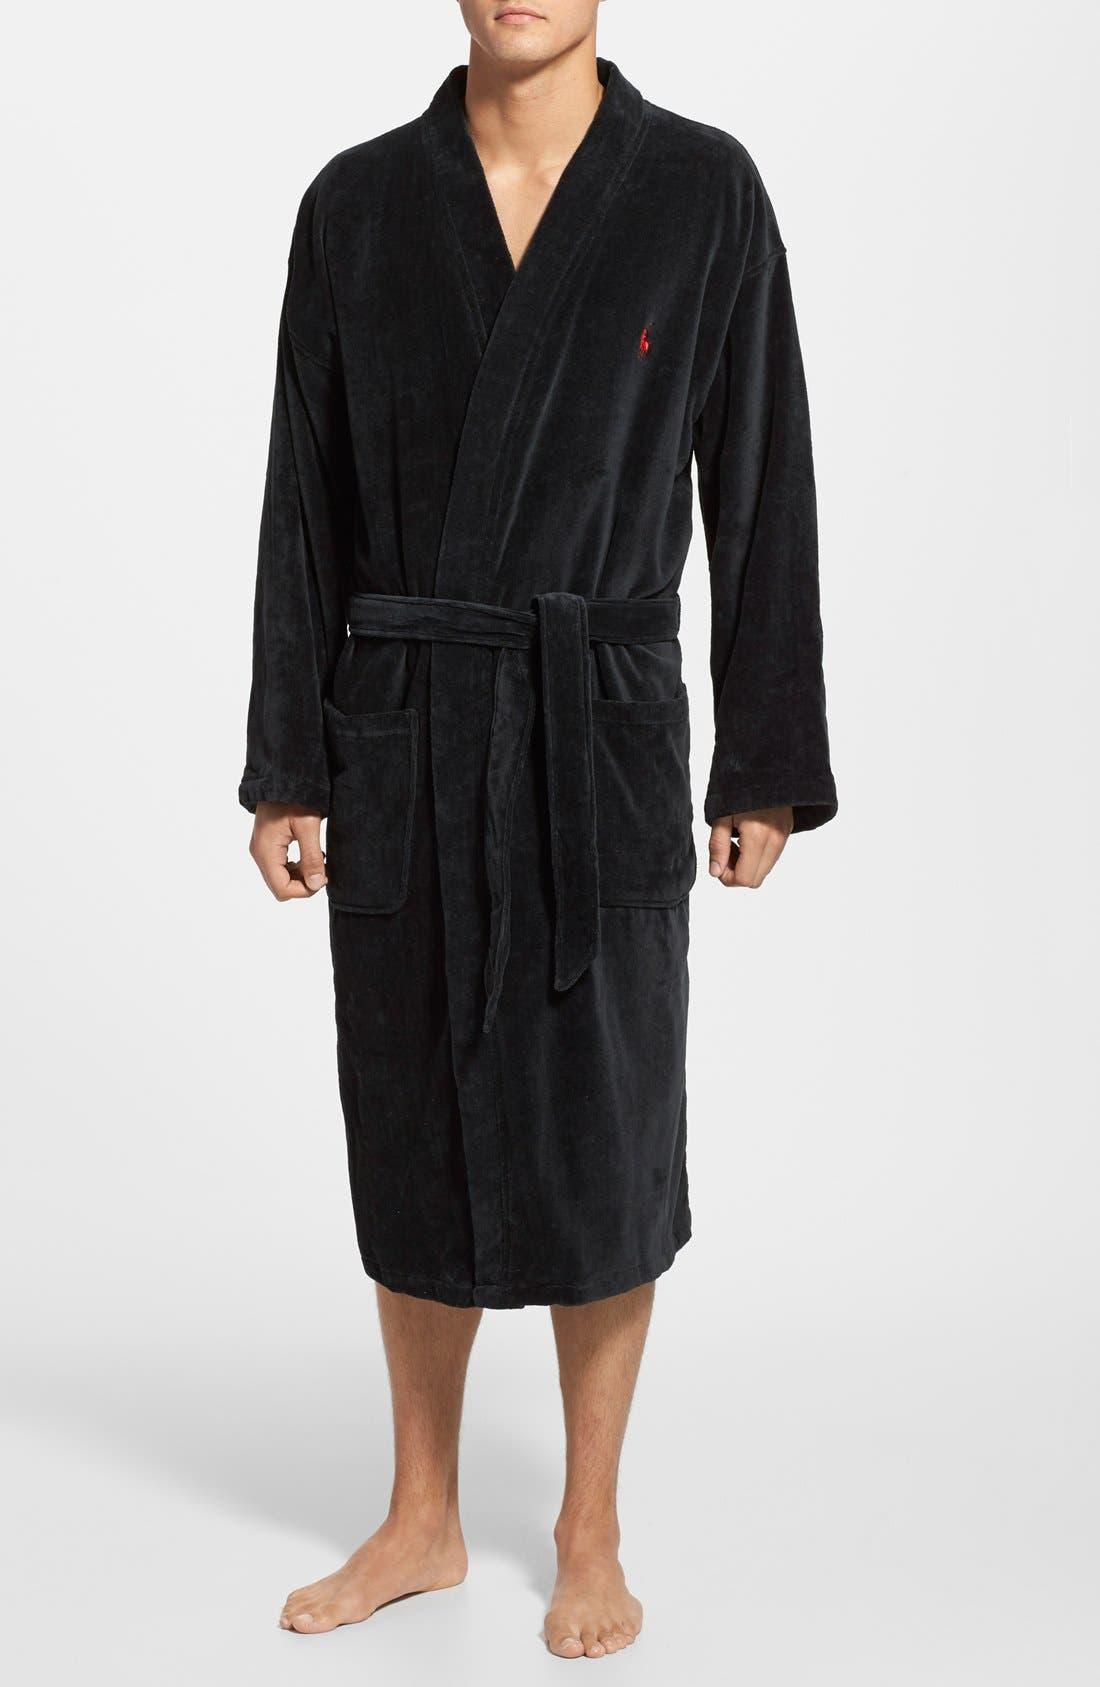 Cotton Fleece Robe,                         Main,                         color, Black